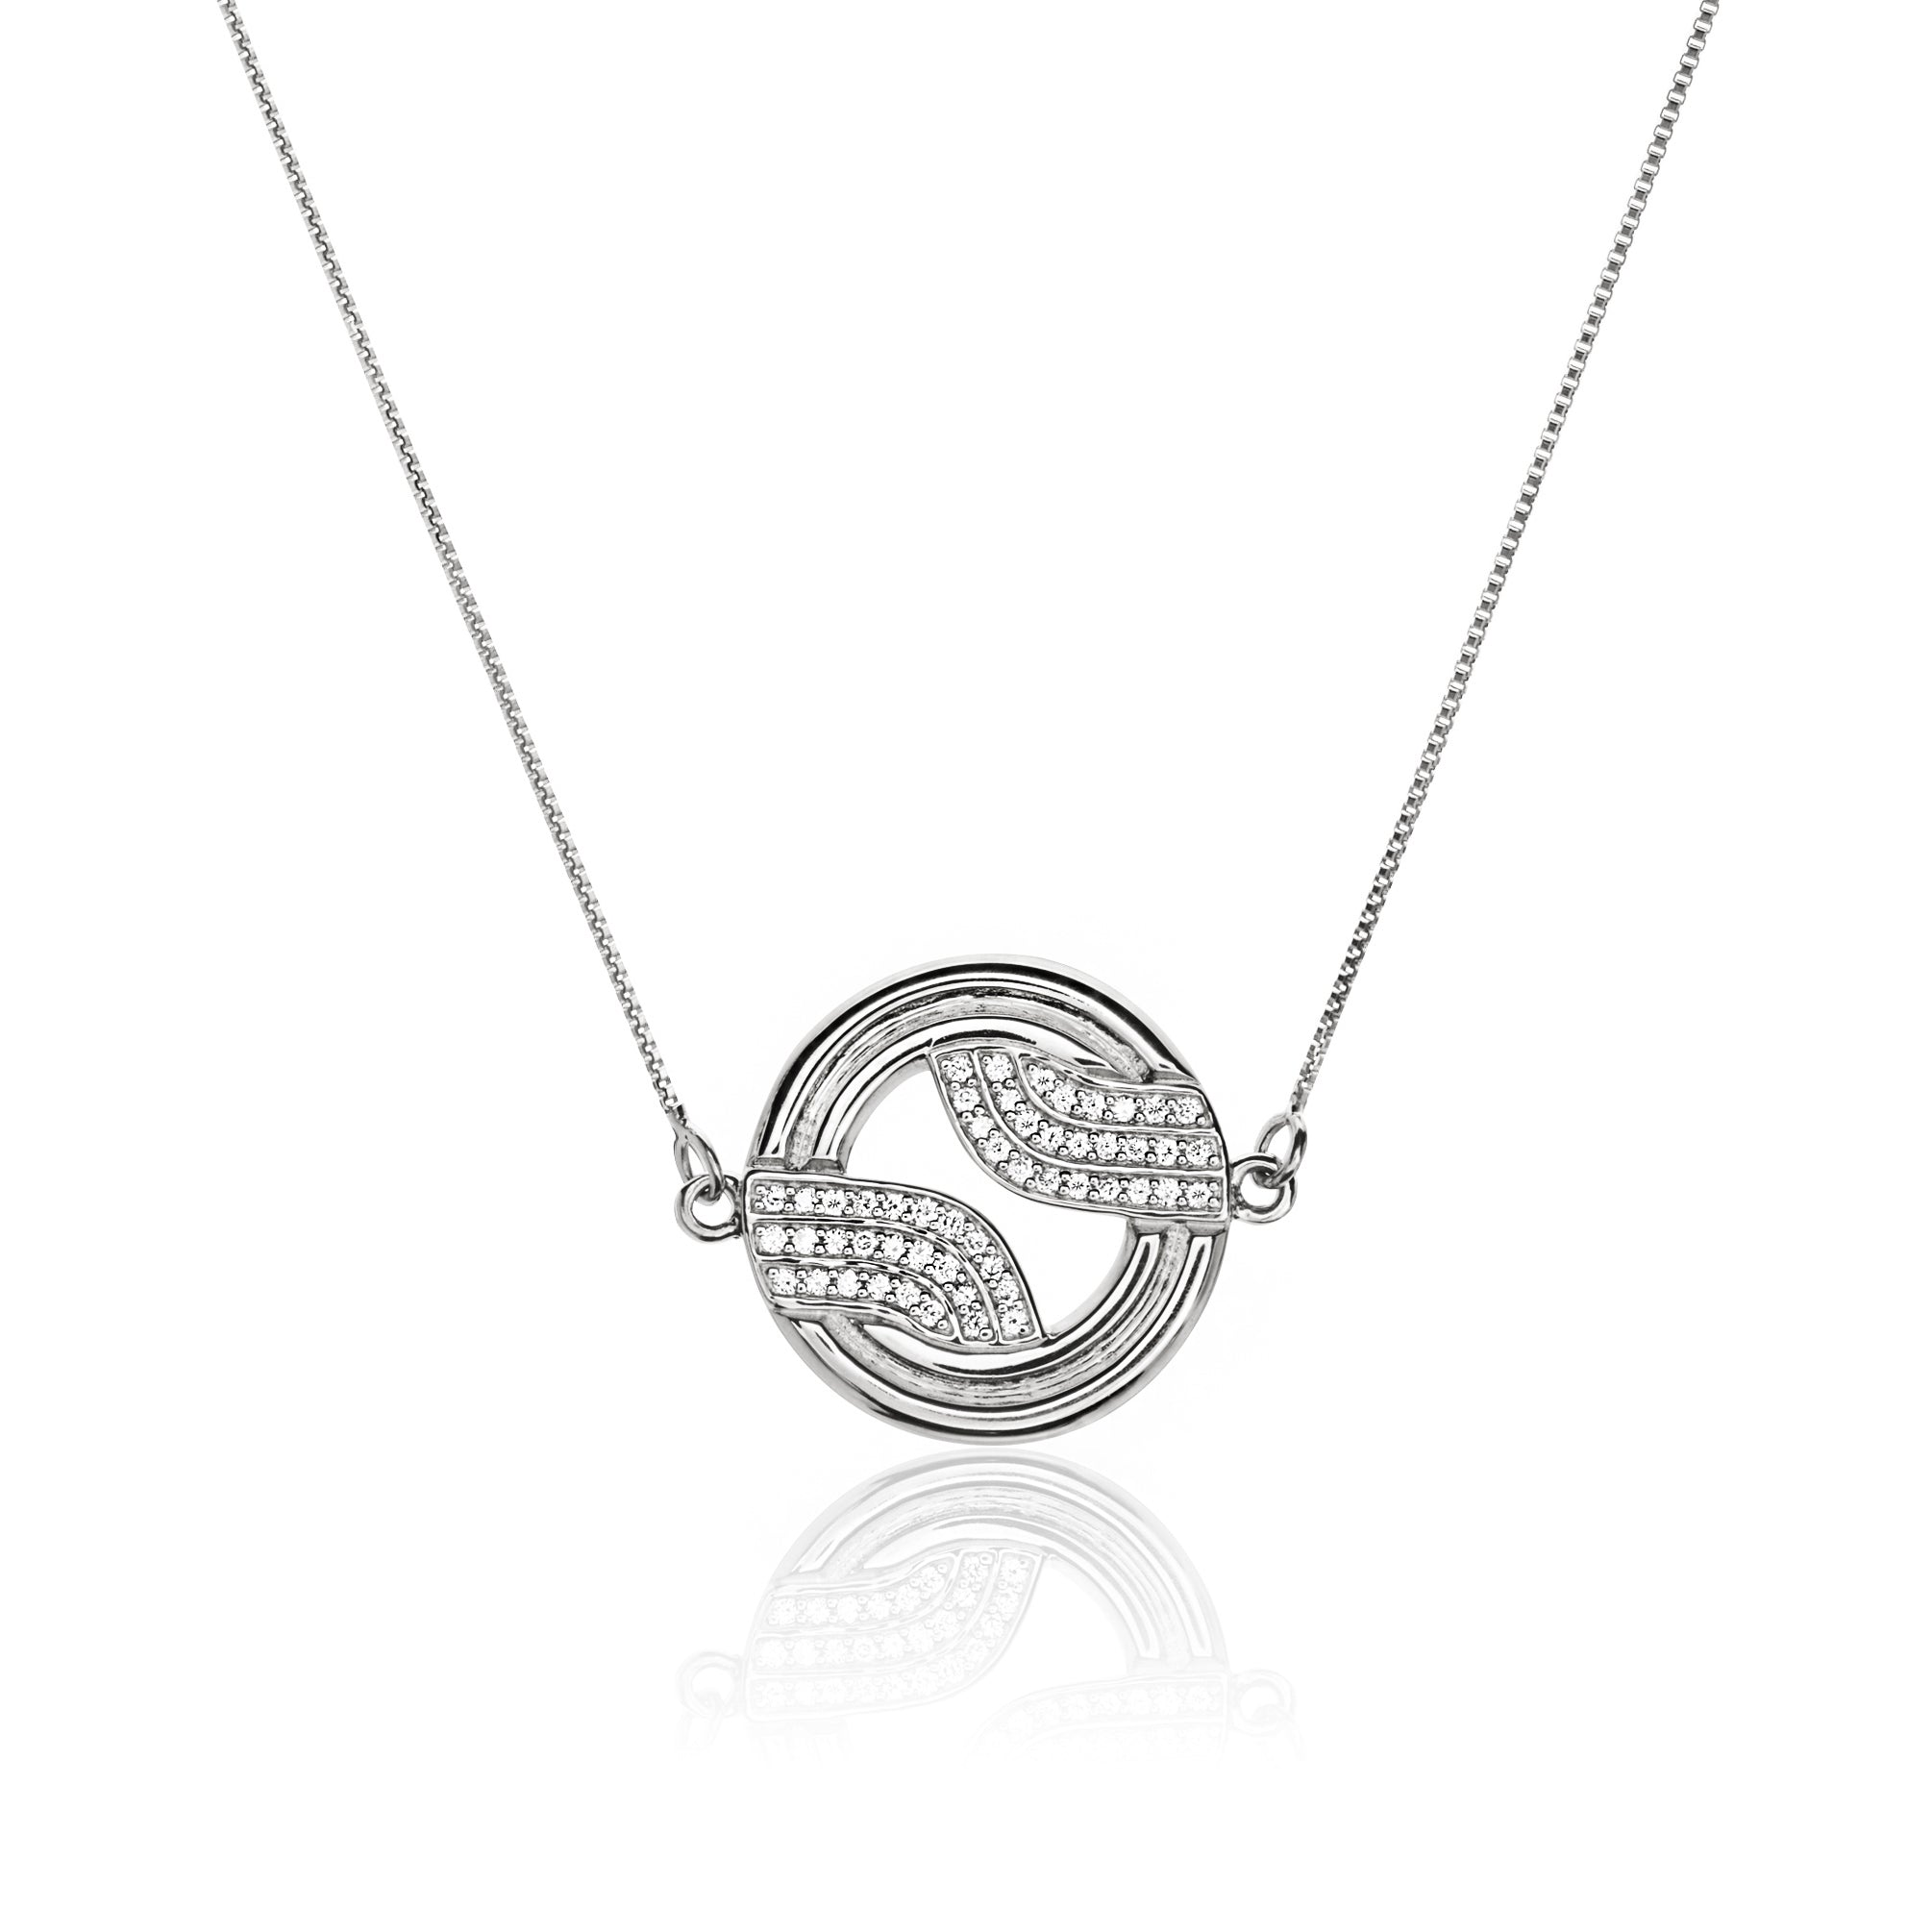 Stenmark Diamond Solar Pendant 15 </br> 18ct White Gold with Diamonds